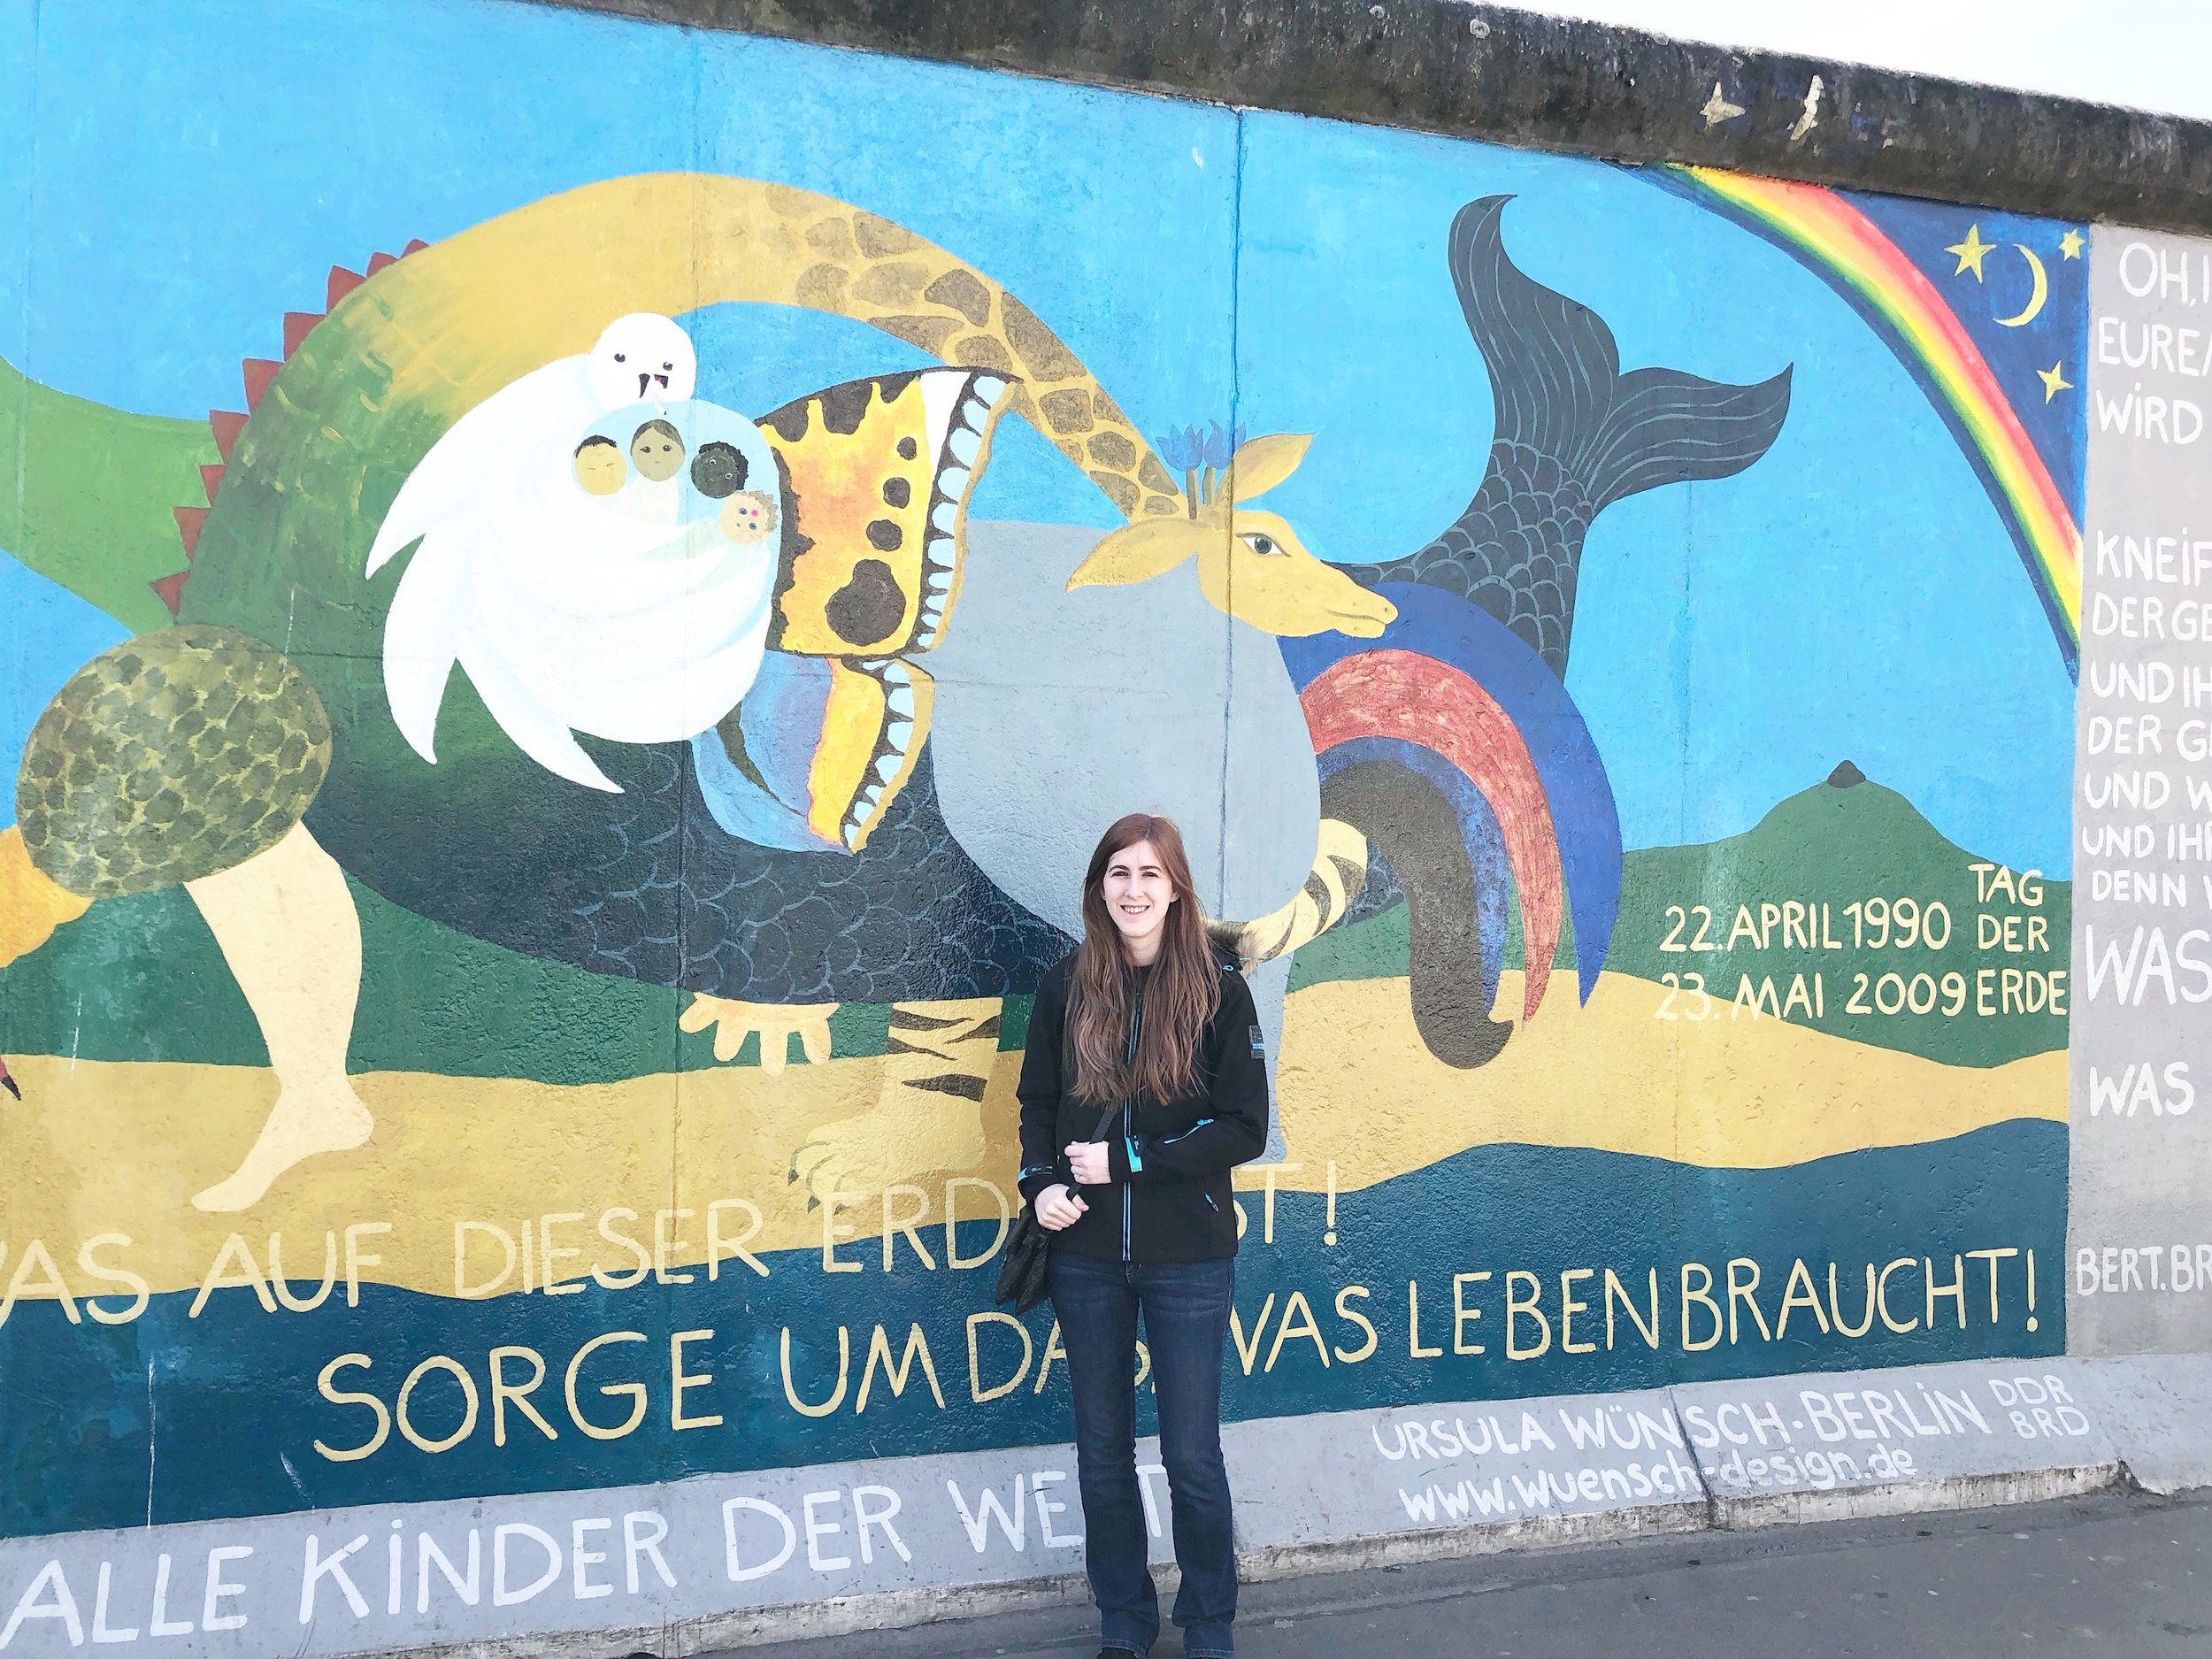 Things-To-See-In-Germany-Berlin-Wall.JPG